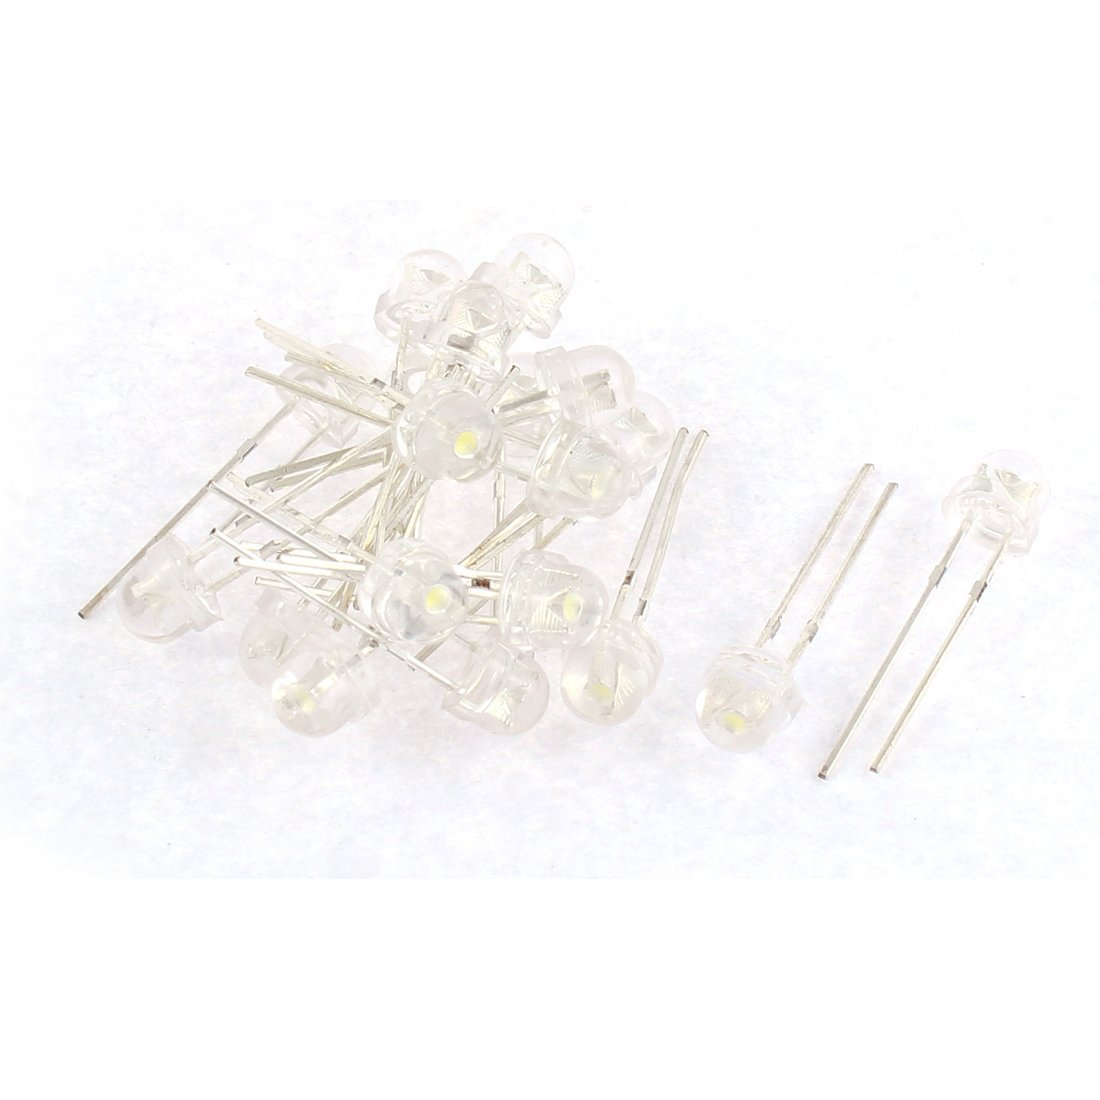 sourcingmap 20pcs 5mm White Light LED Lamp Emitting Diodes Bulbs Component a15113000ux1916